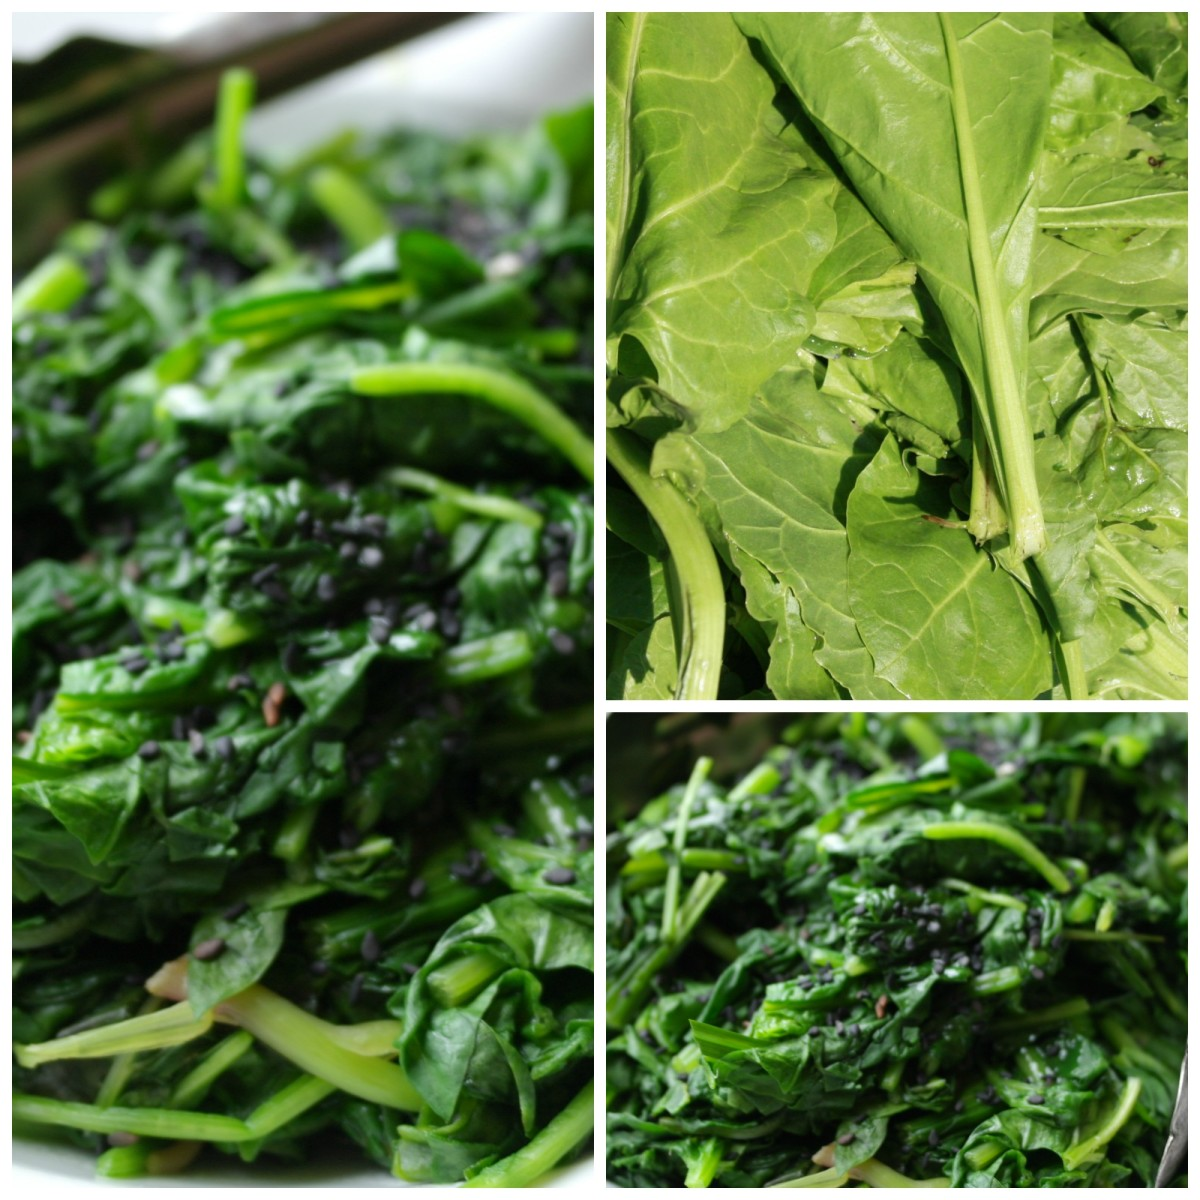 Spinach is a dark leafy vegetable that is rich in lycopene, and other antioxidants that nourish your nails from within.